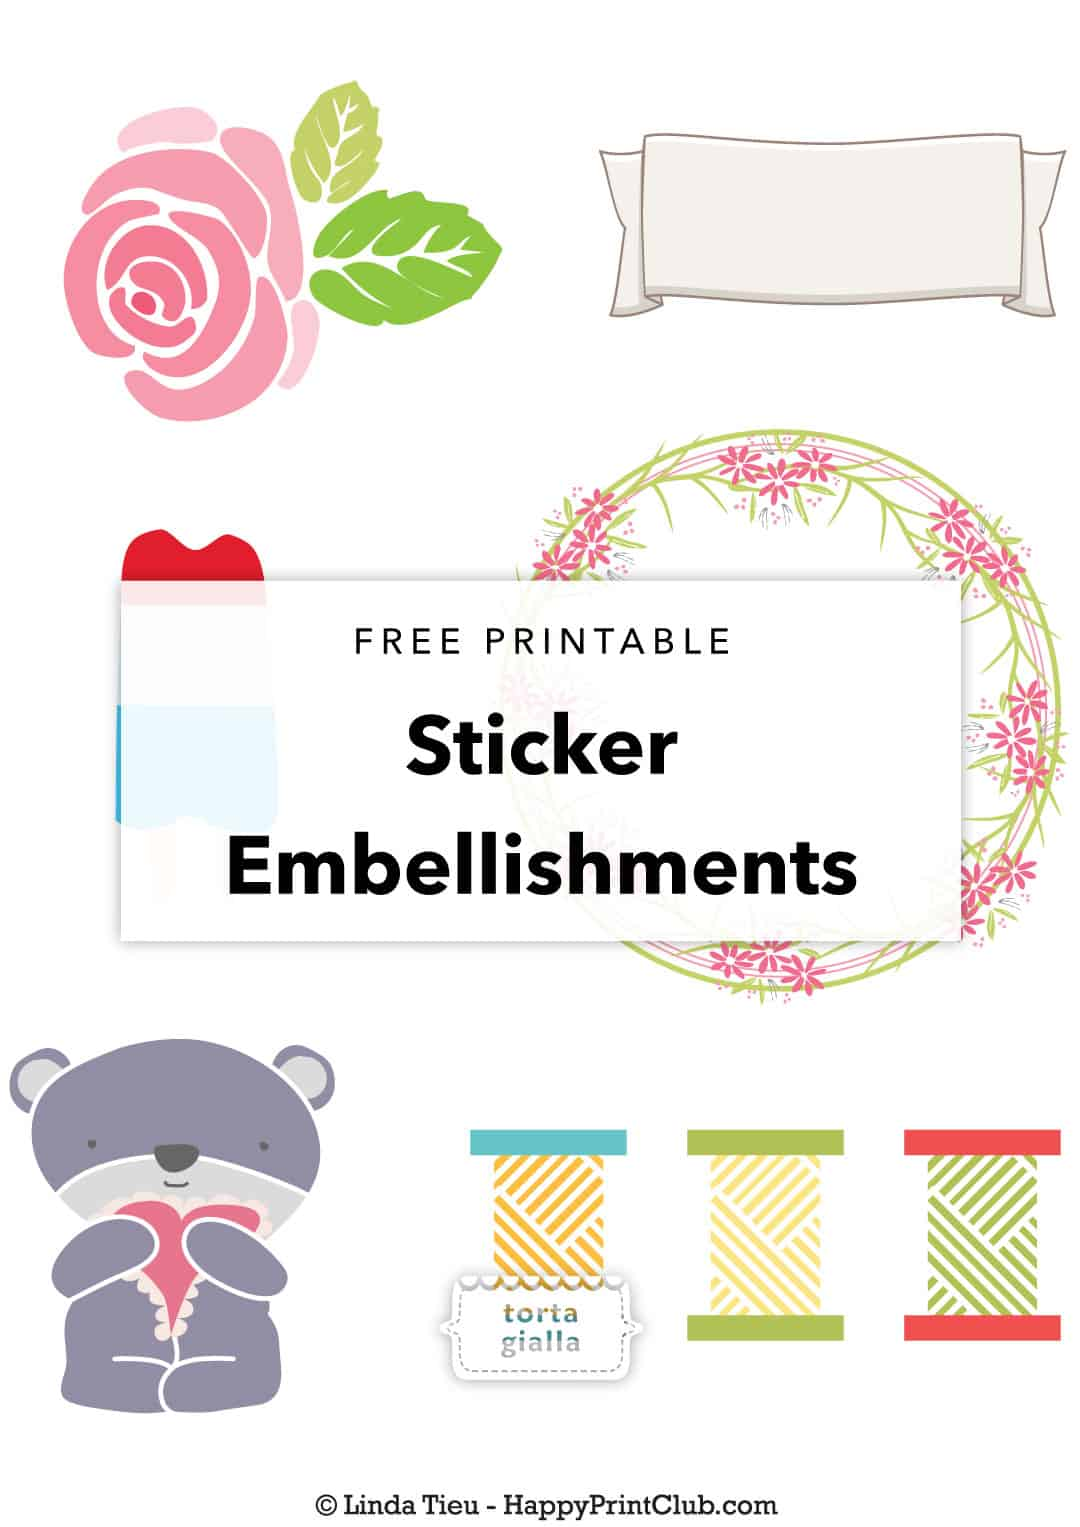 More Free Printable Sticker Embellishment Motifs